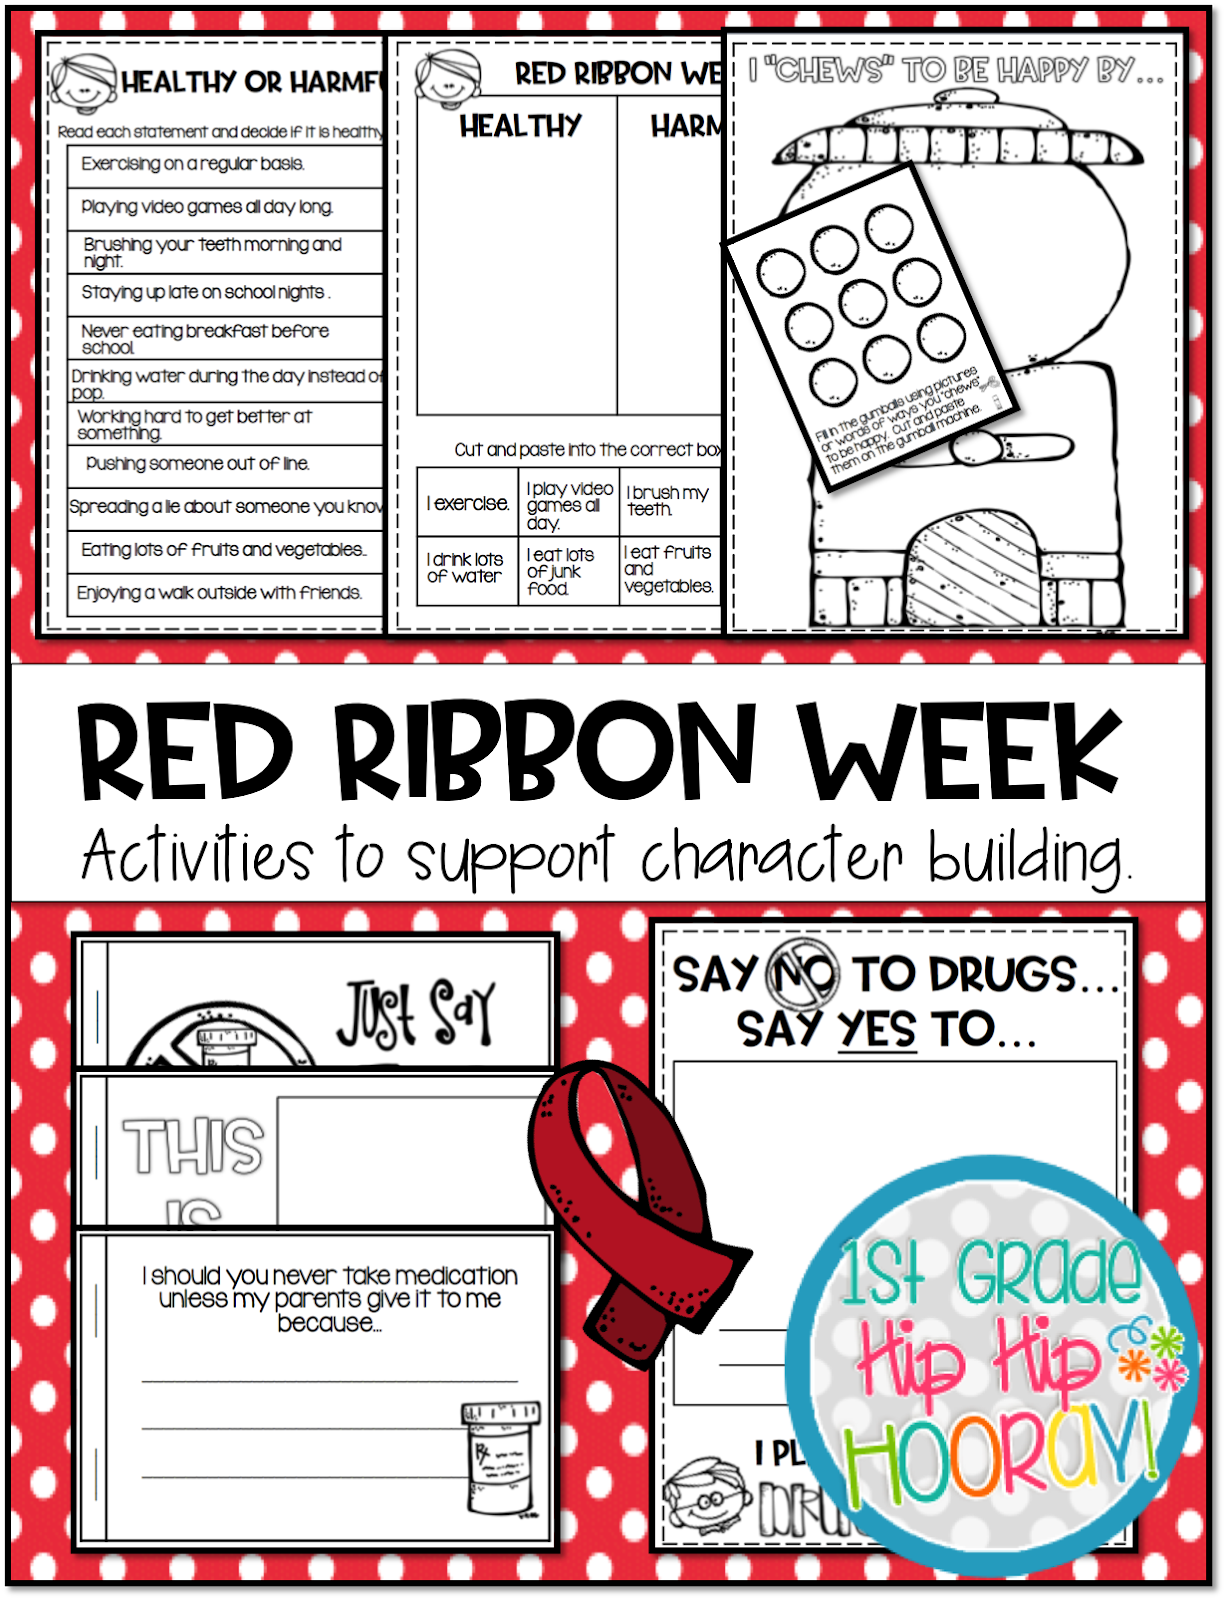 1st Grade Hip Hip Hooray Red Ribbon Week Activities